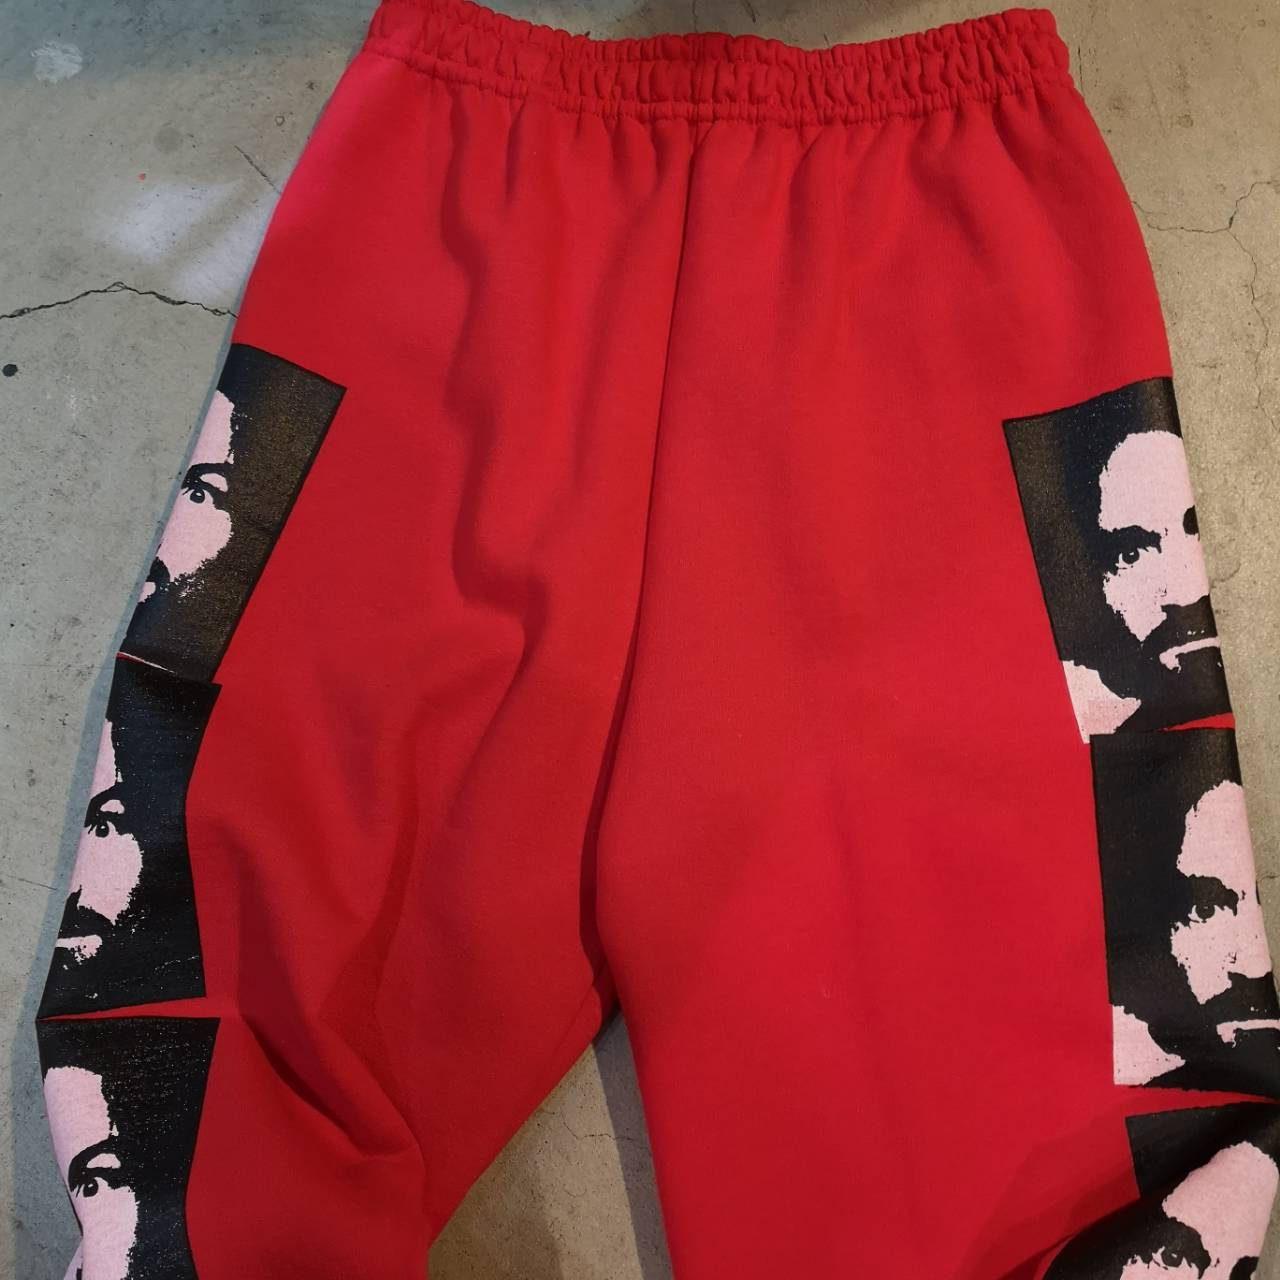 ||||| MANSON SWEAT PANTS RED, BLK